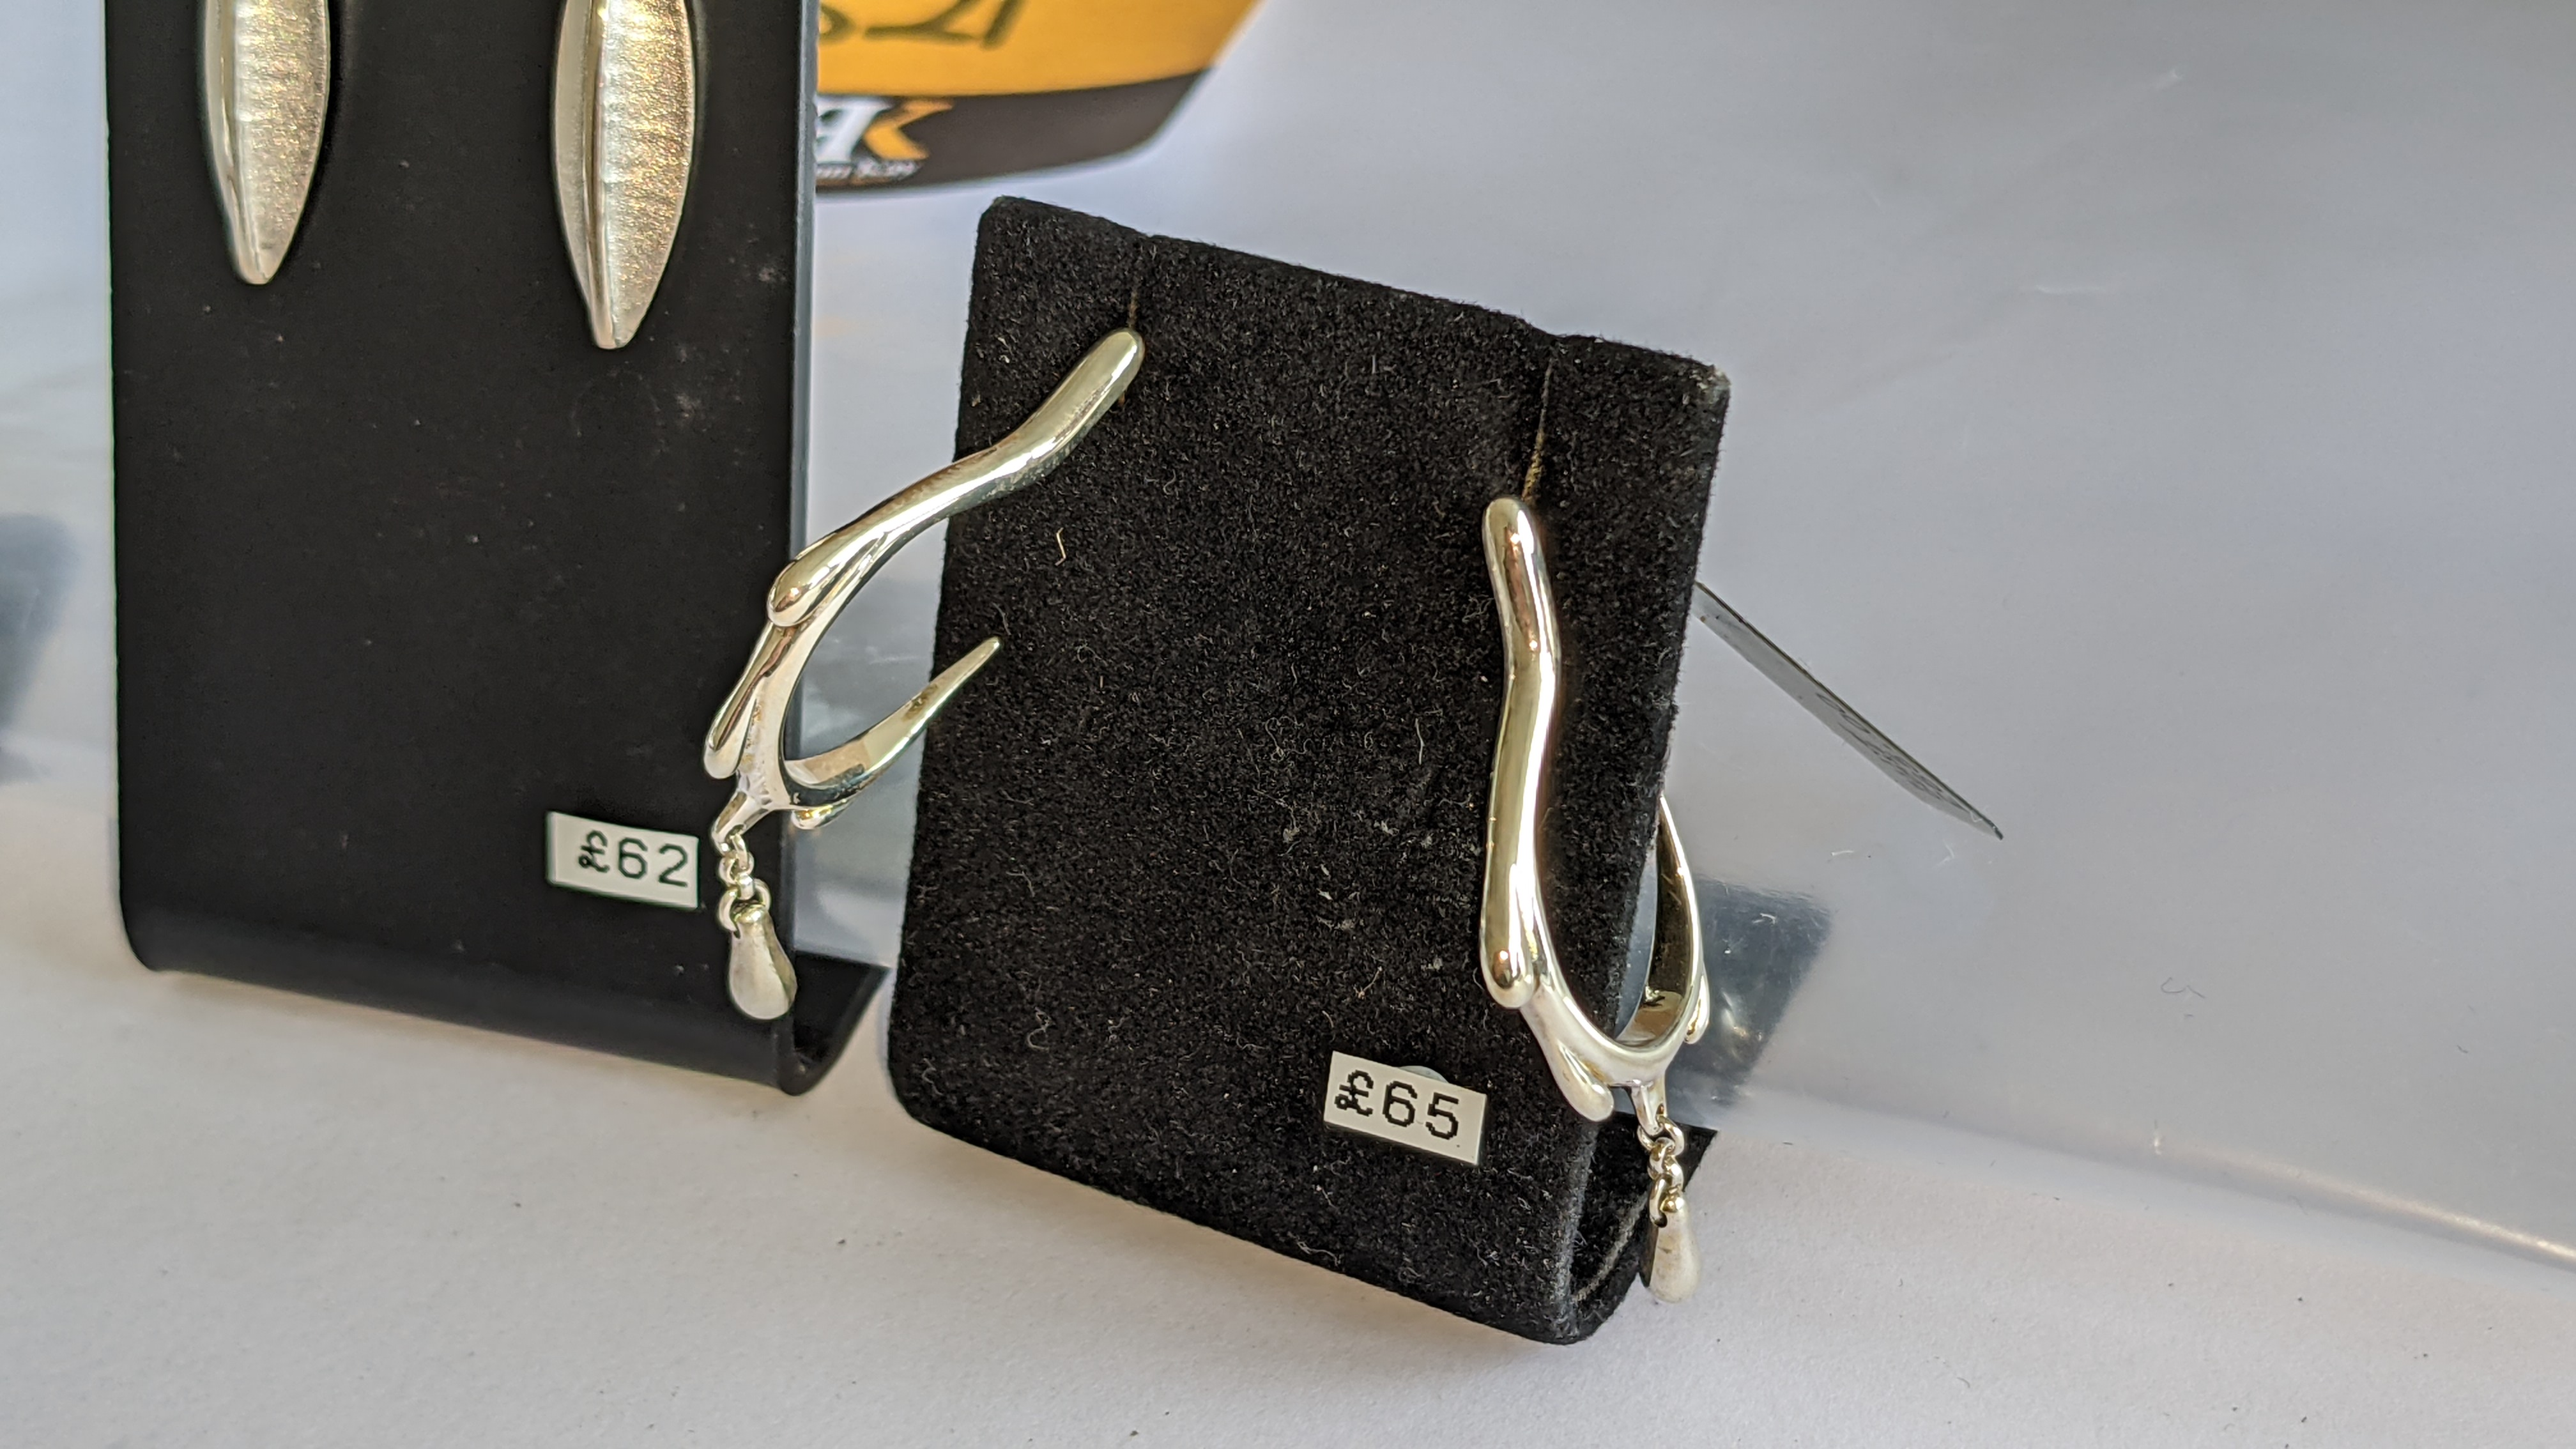 3 assorted pairs of earrings, each with a retail price of £62 - £70 per pair, total RRP £197 - Image 5 of 9